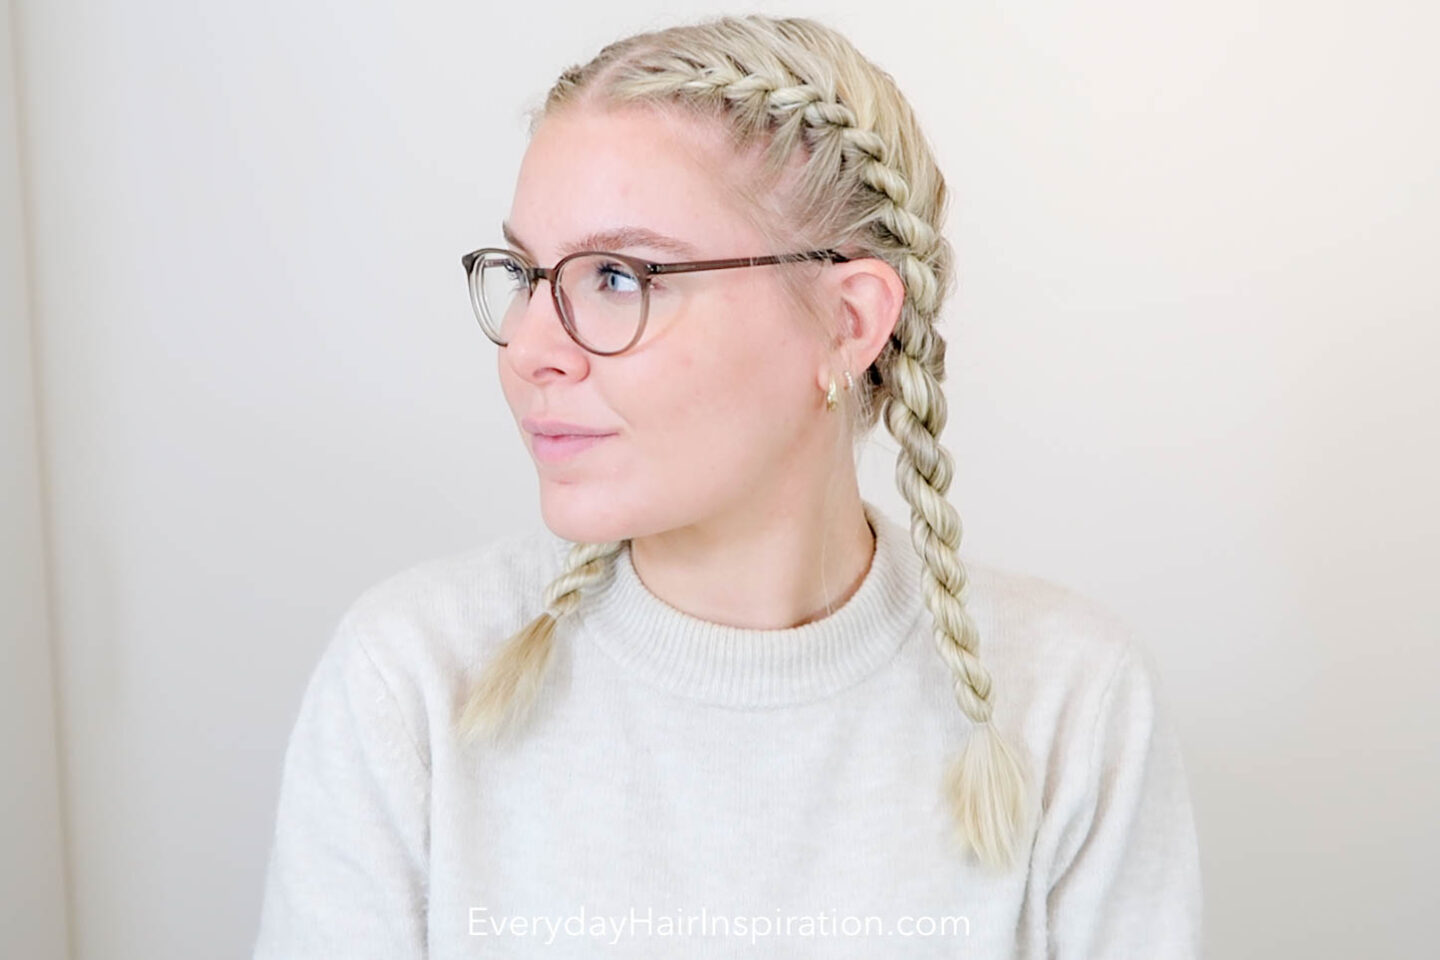 Blonde girl seen from the front, looking to the side with her hair braided into double French rope braids.